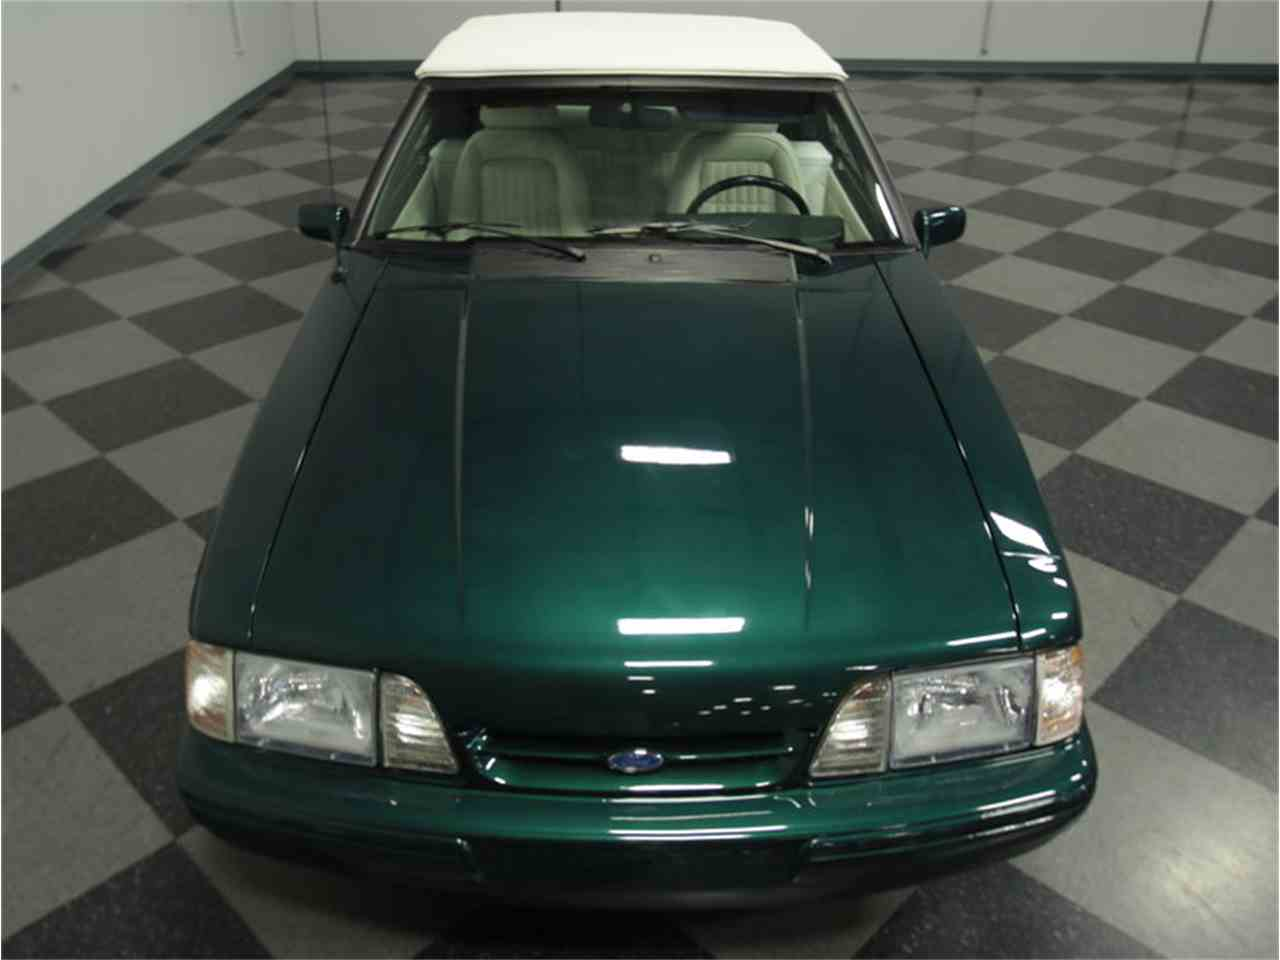 Large Picture of 1990 Ford Mustang LX 7-UP Edition located in Lithia Springs Georgia Offered by Streetside Classics - Atlanta - IRSA